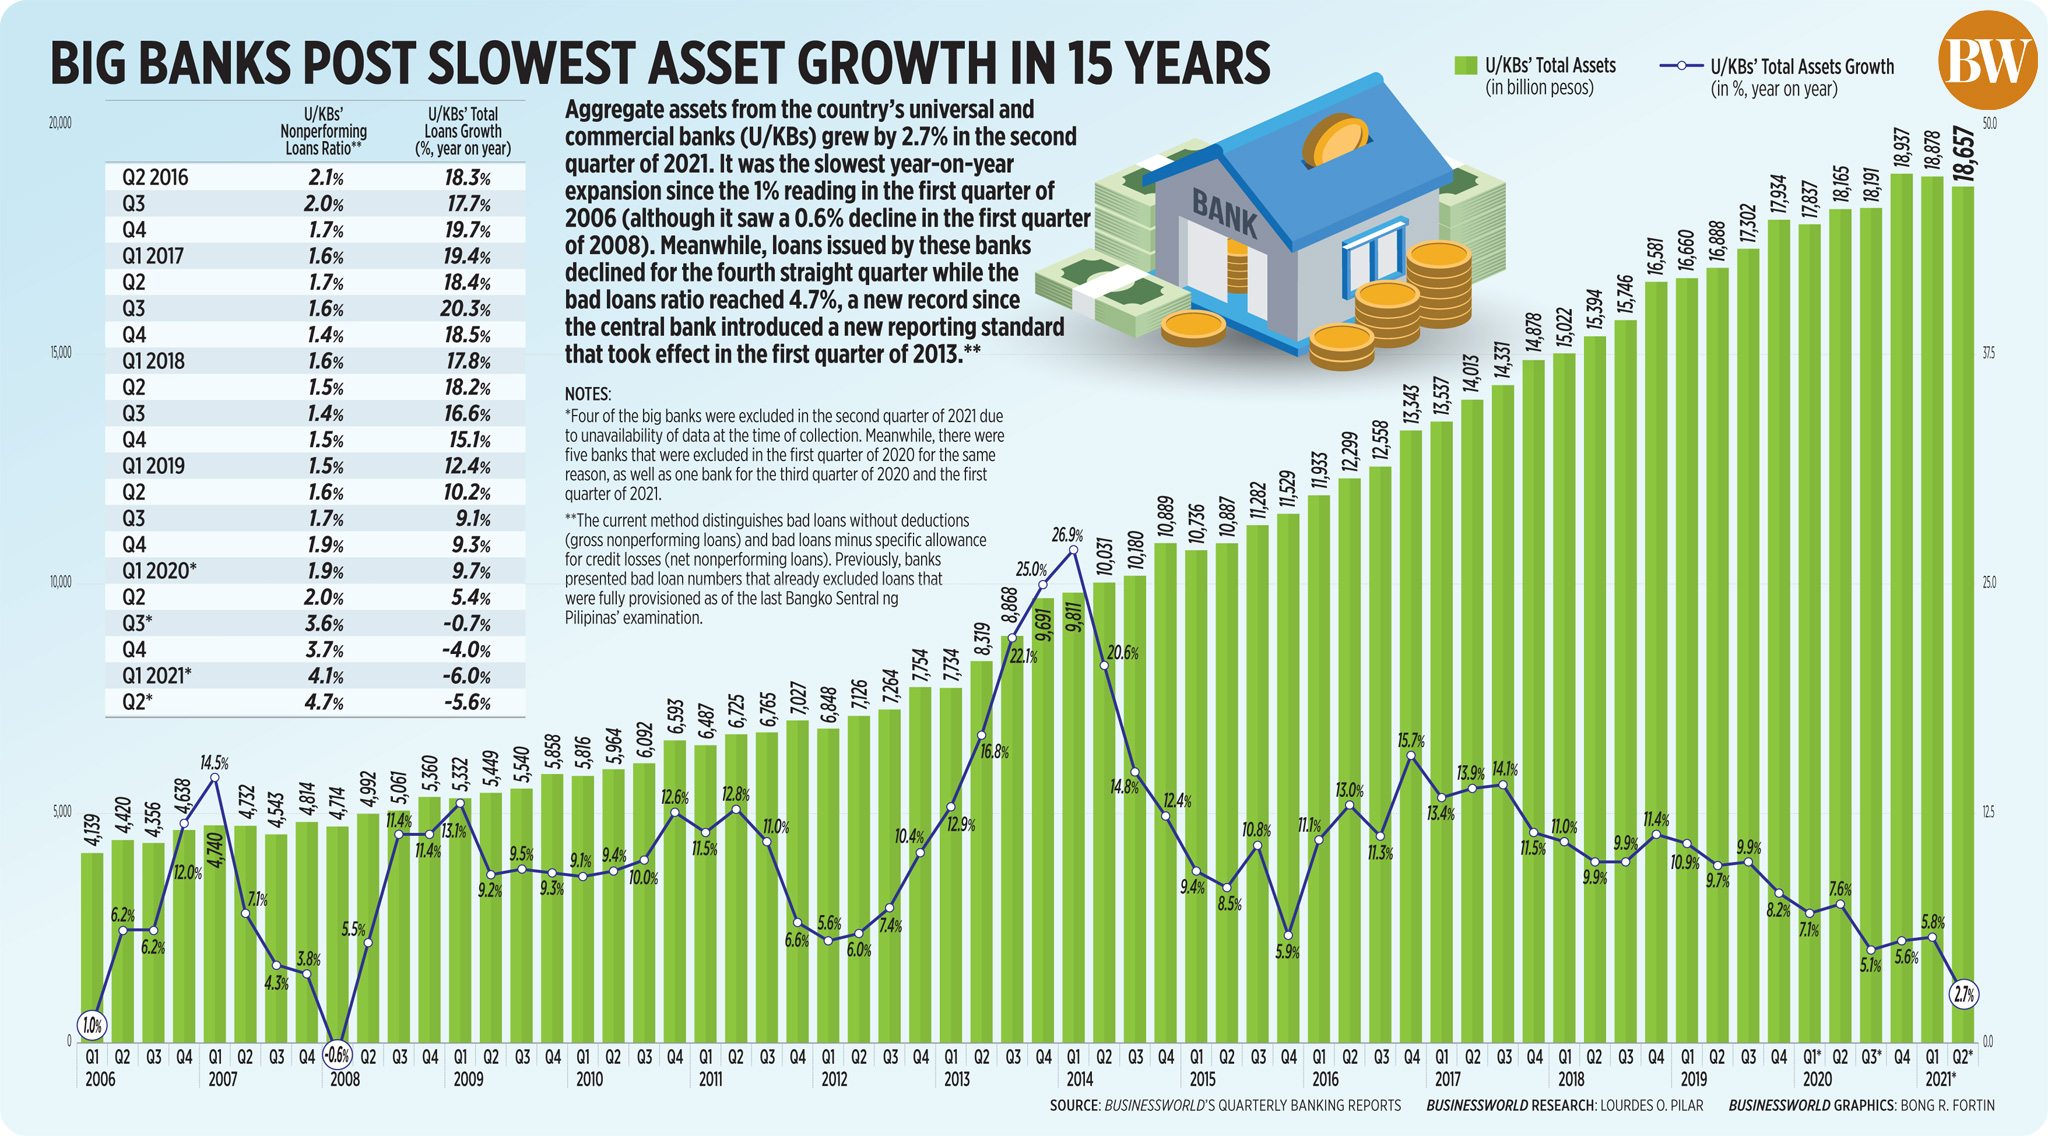 Big banks post slowest asset growth in 15 years